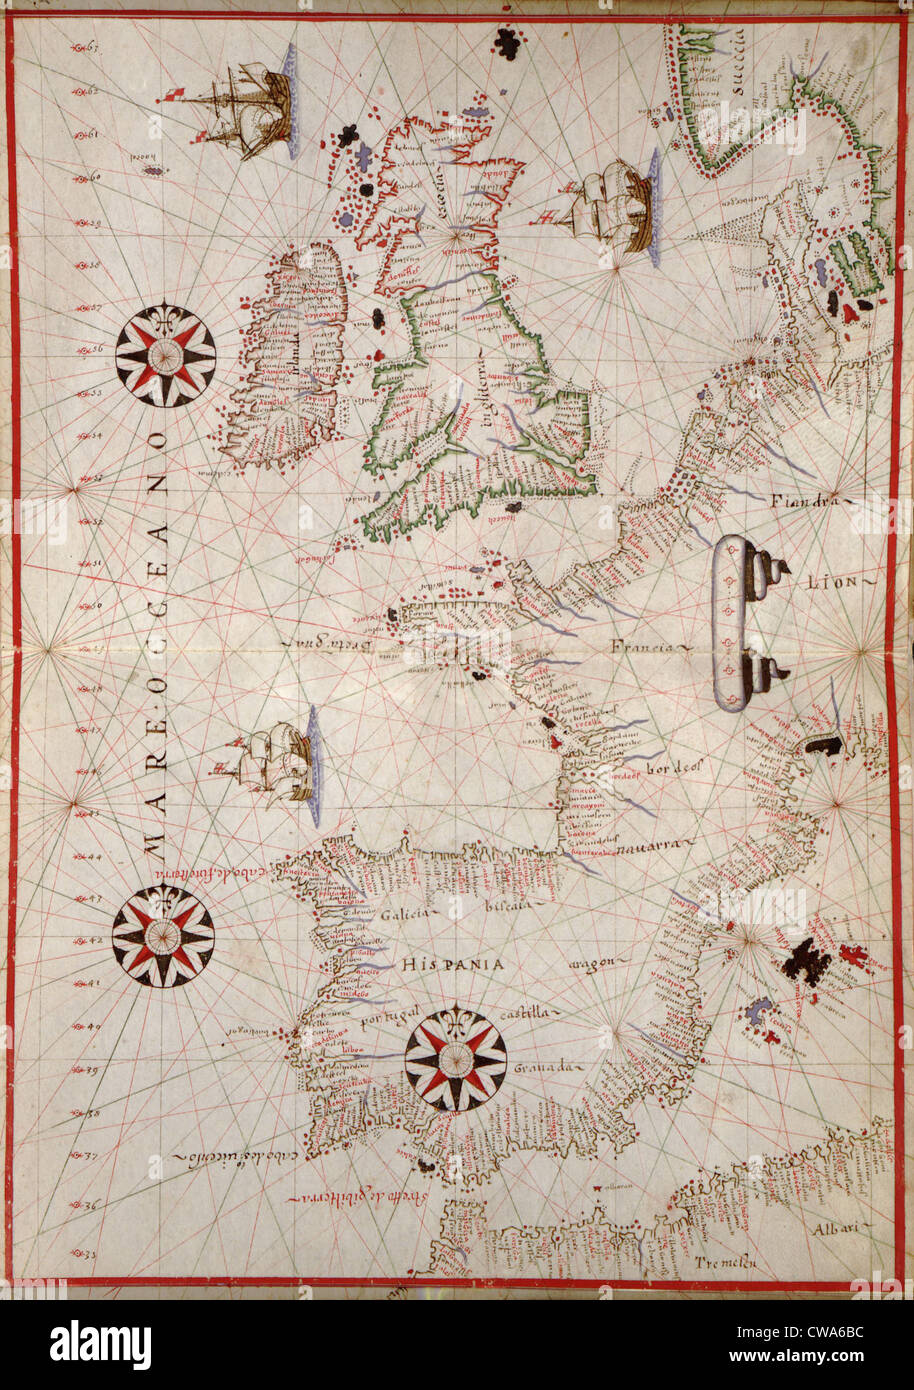 Map Of Spain Coast.1590 Nautical Map Of Wesern Europe Detailing Coast Of Spain Stock